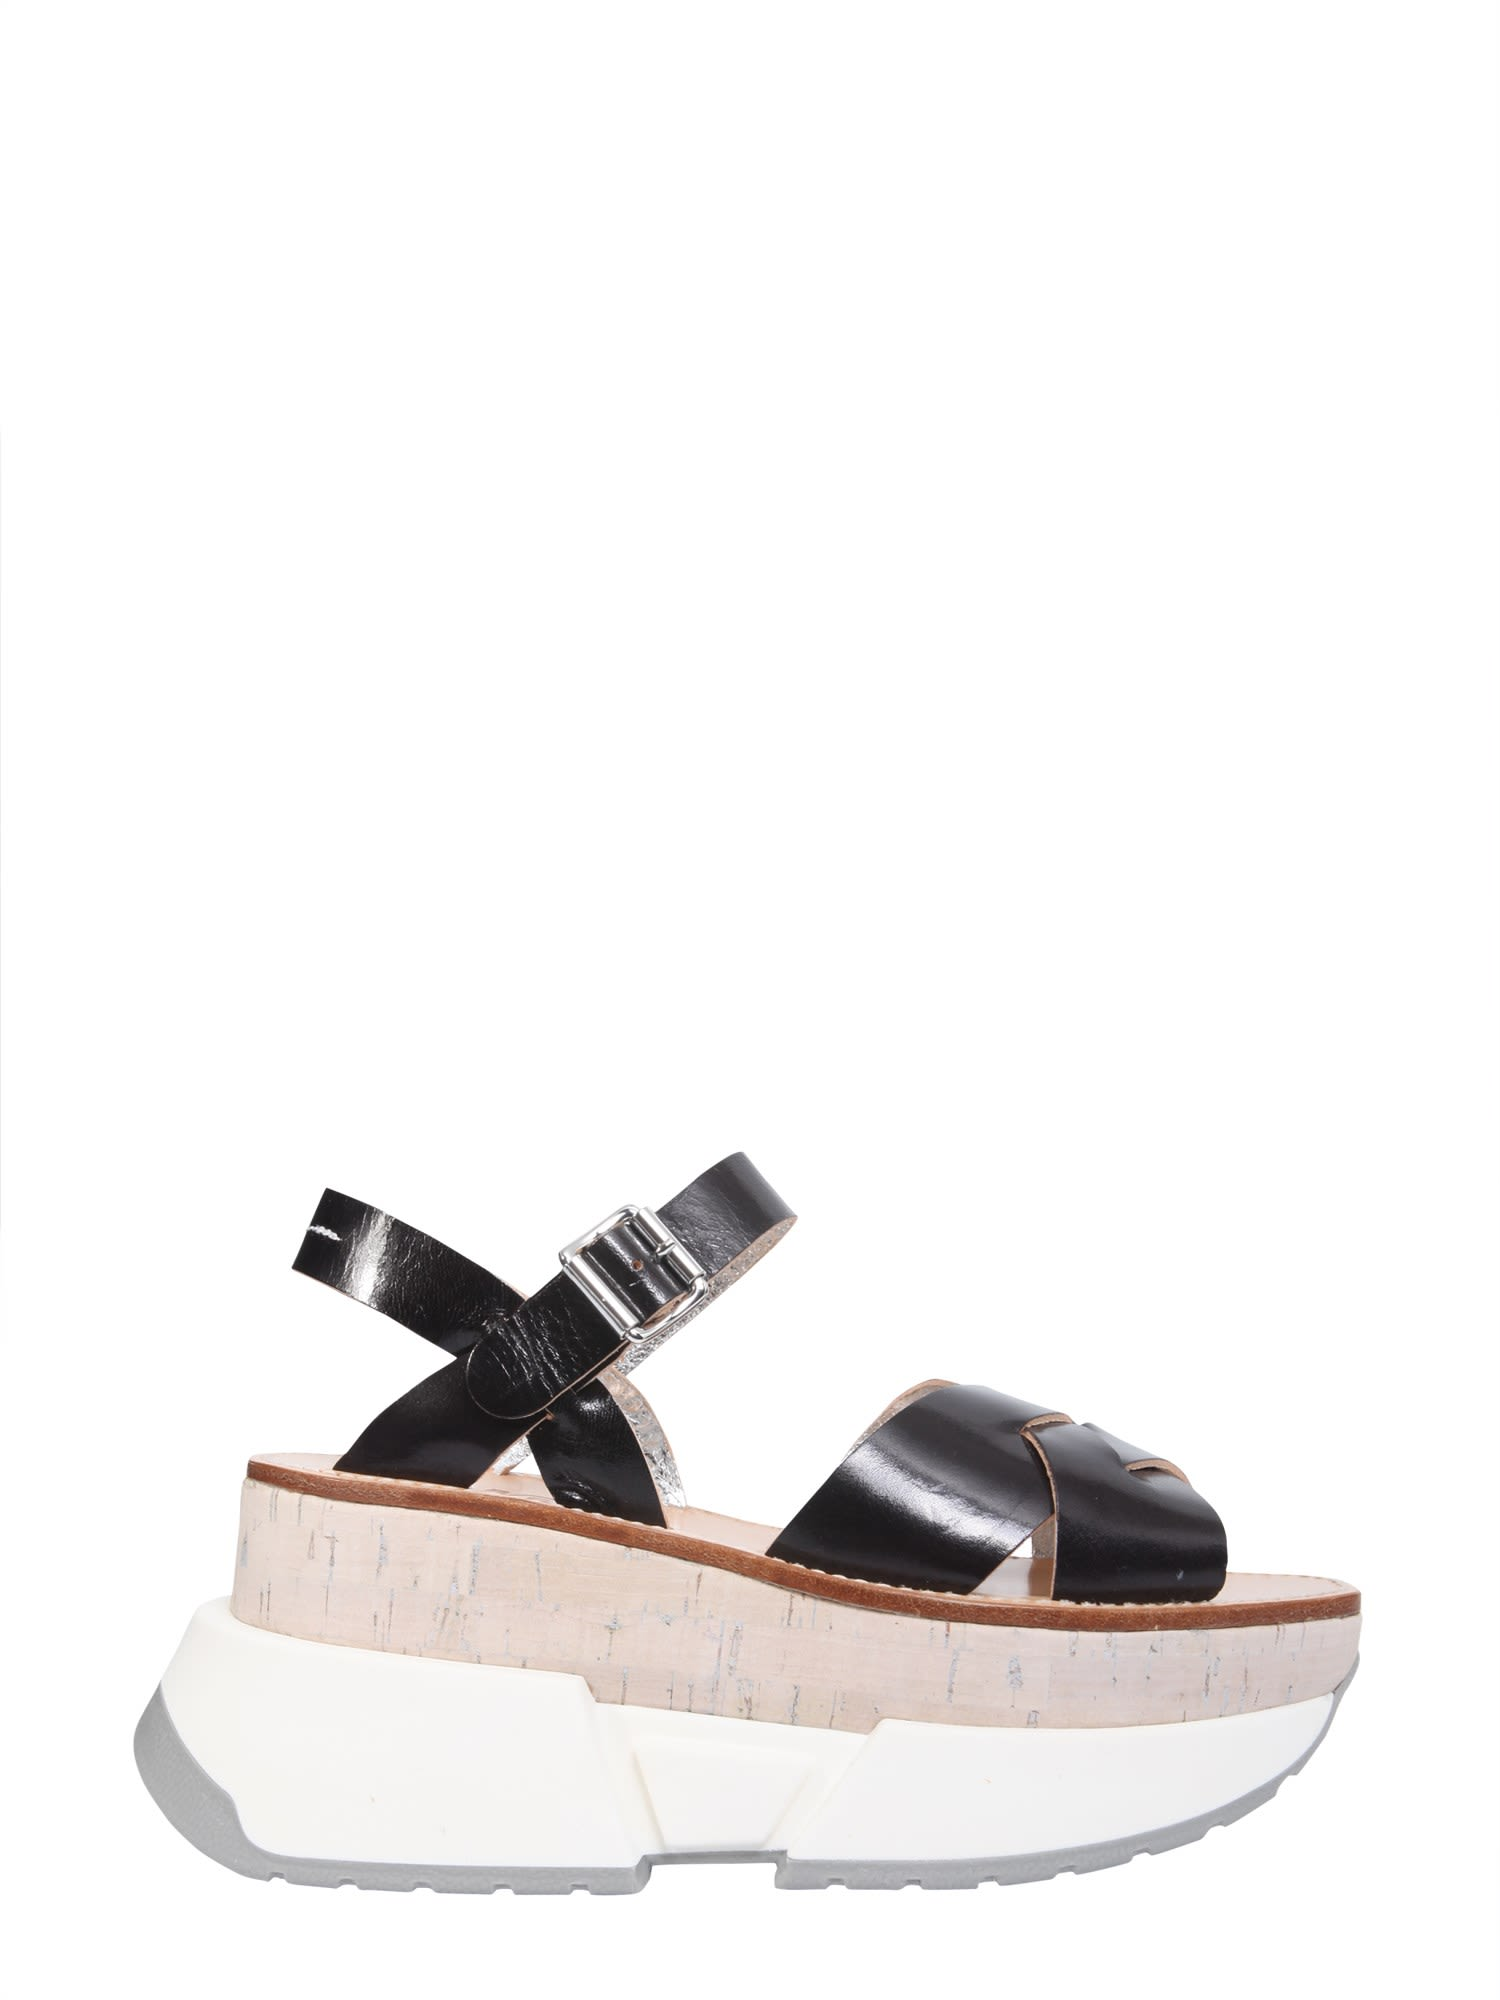 Mm6 Maison Margiela Sandals HTYpmEyV3U